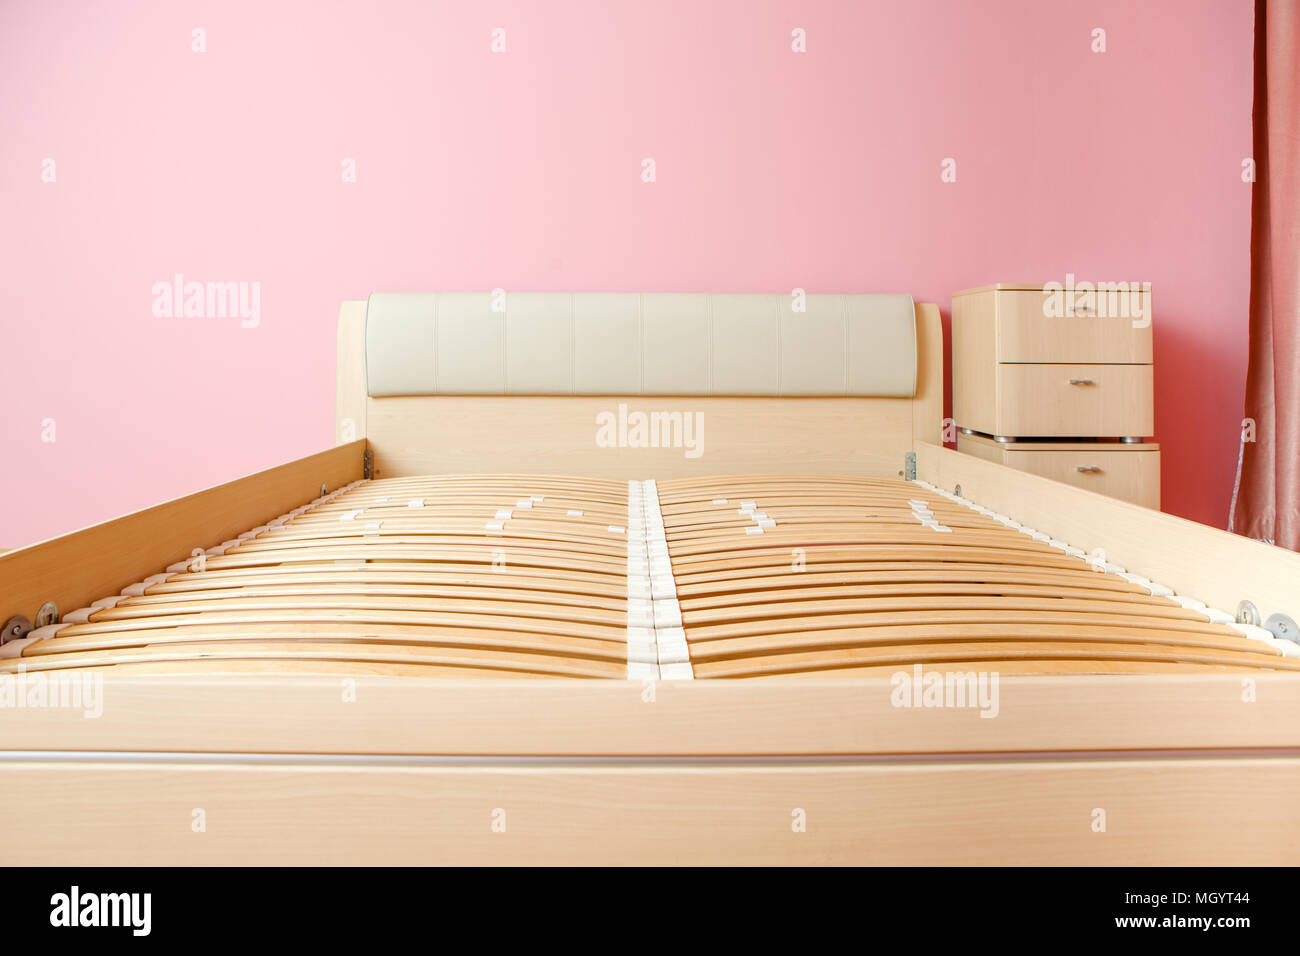 Photo of bed without mattress, chest of drawers - Stock Image